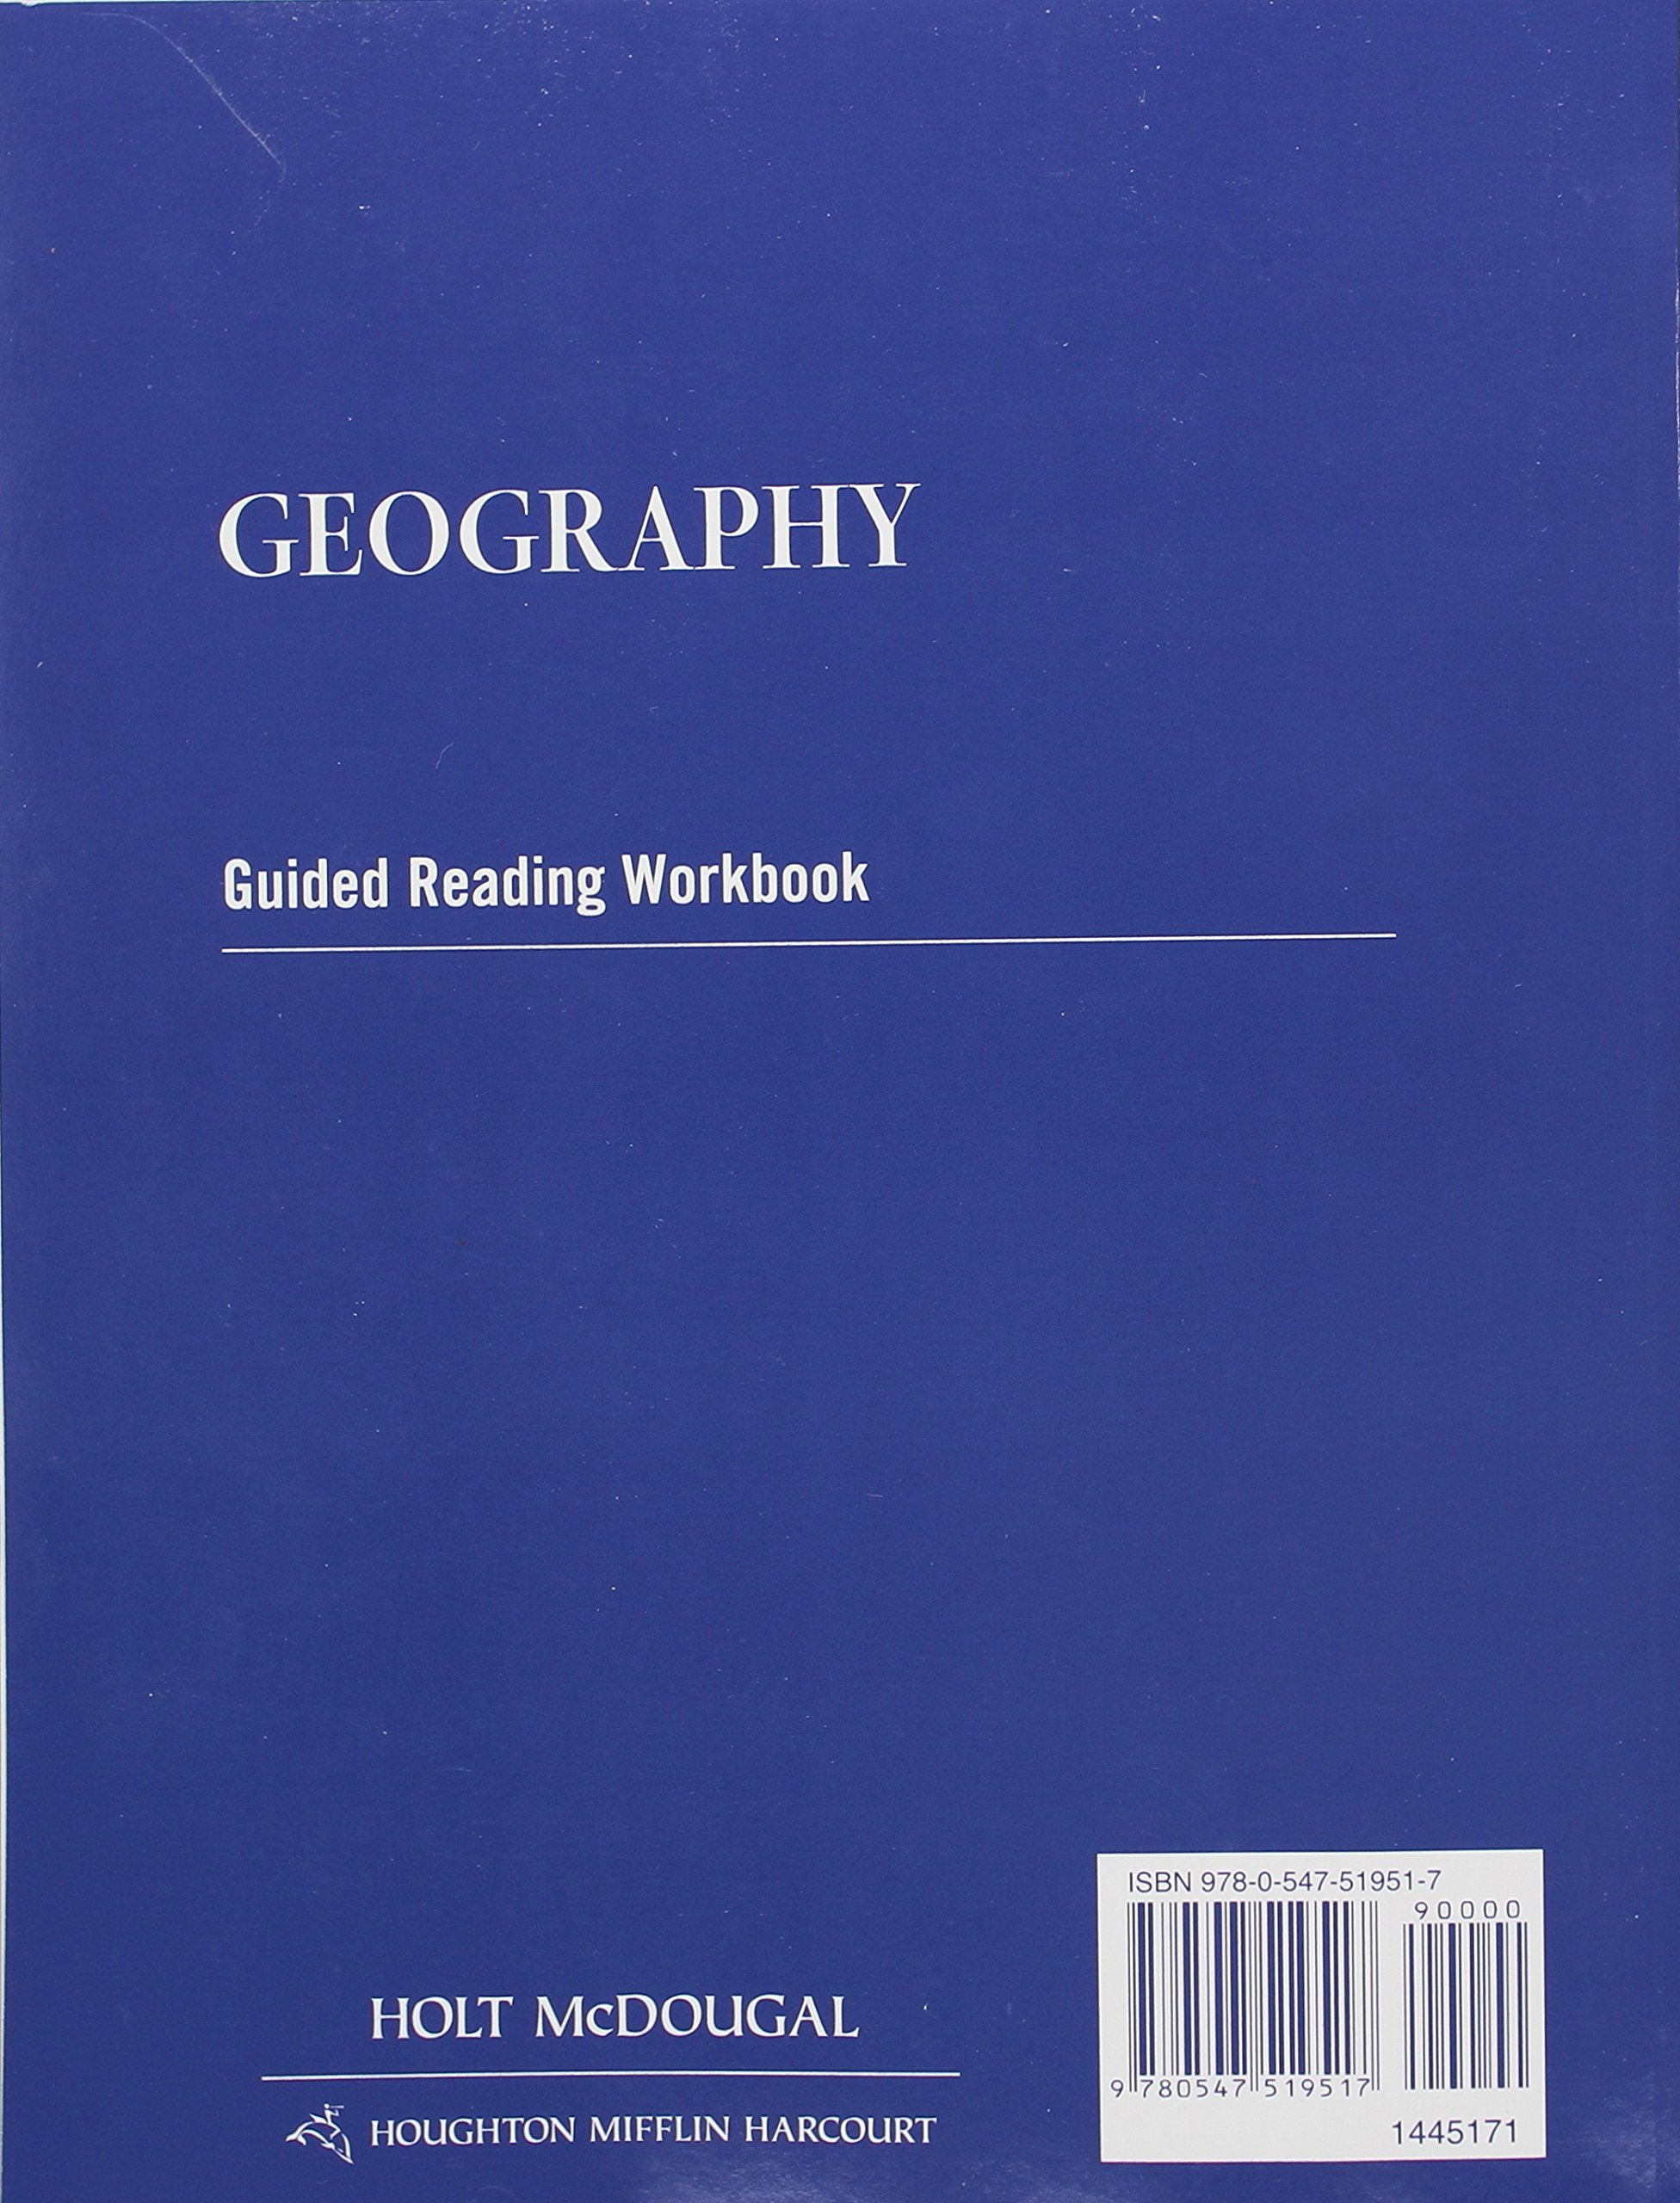 Geography: Guided Reading Workbook: HOLT MCDOUGAL: 9780547519517:  Amazon.com: Books